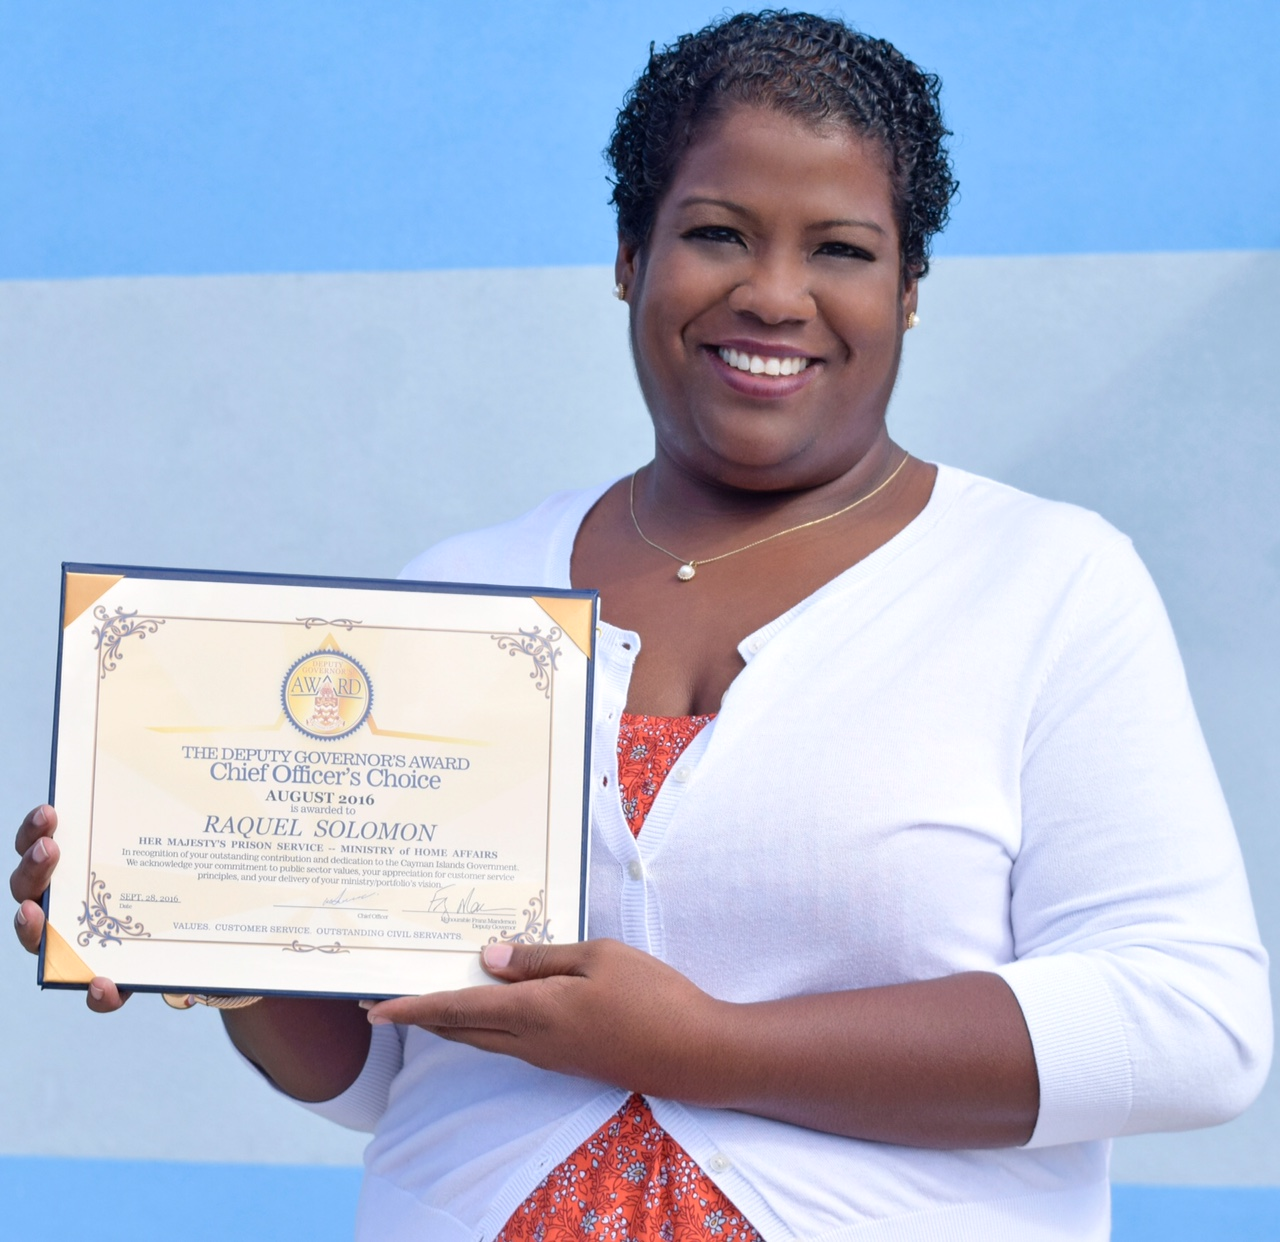 Human Resource Manager Raquel Solomon received the award on Friday.